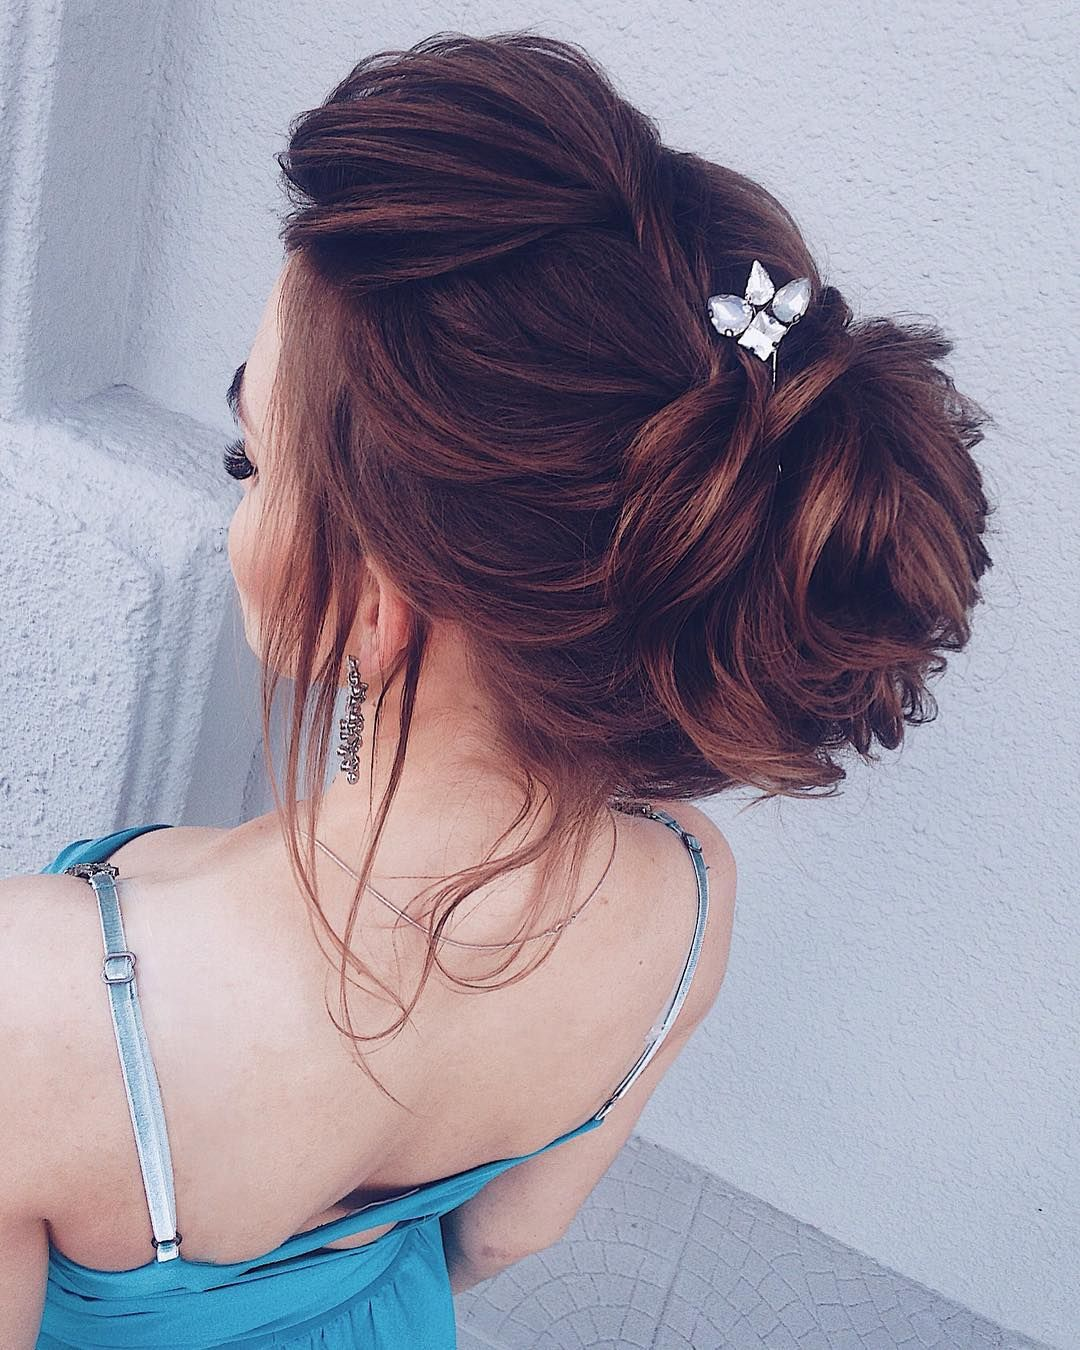 Twisted messy updo hairstyle inspiration | wedding updo hair with hair accessories #bridalhair #updo #weddinghairstyle #hairstyles #messyupdohairstyle #messyupdoideas #updohairstyles #weddinghairinspiration